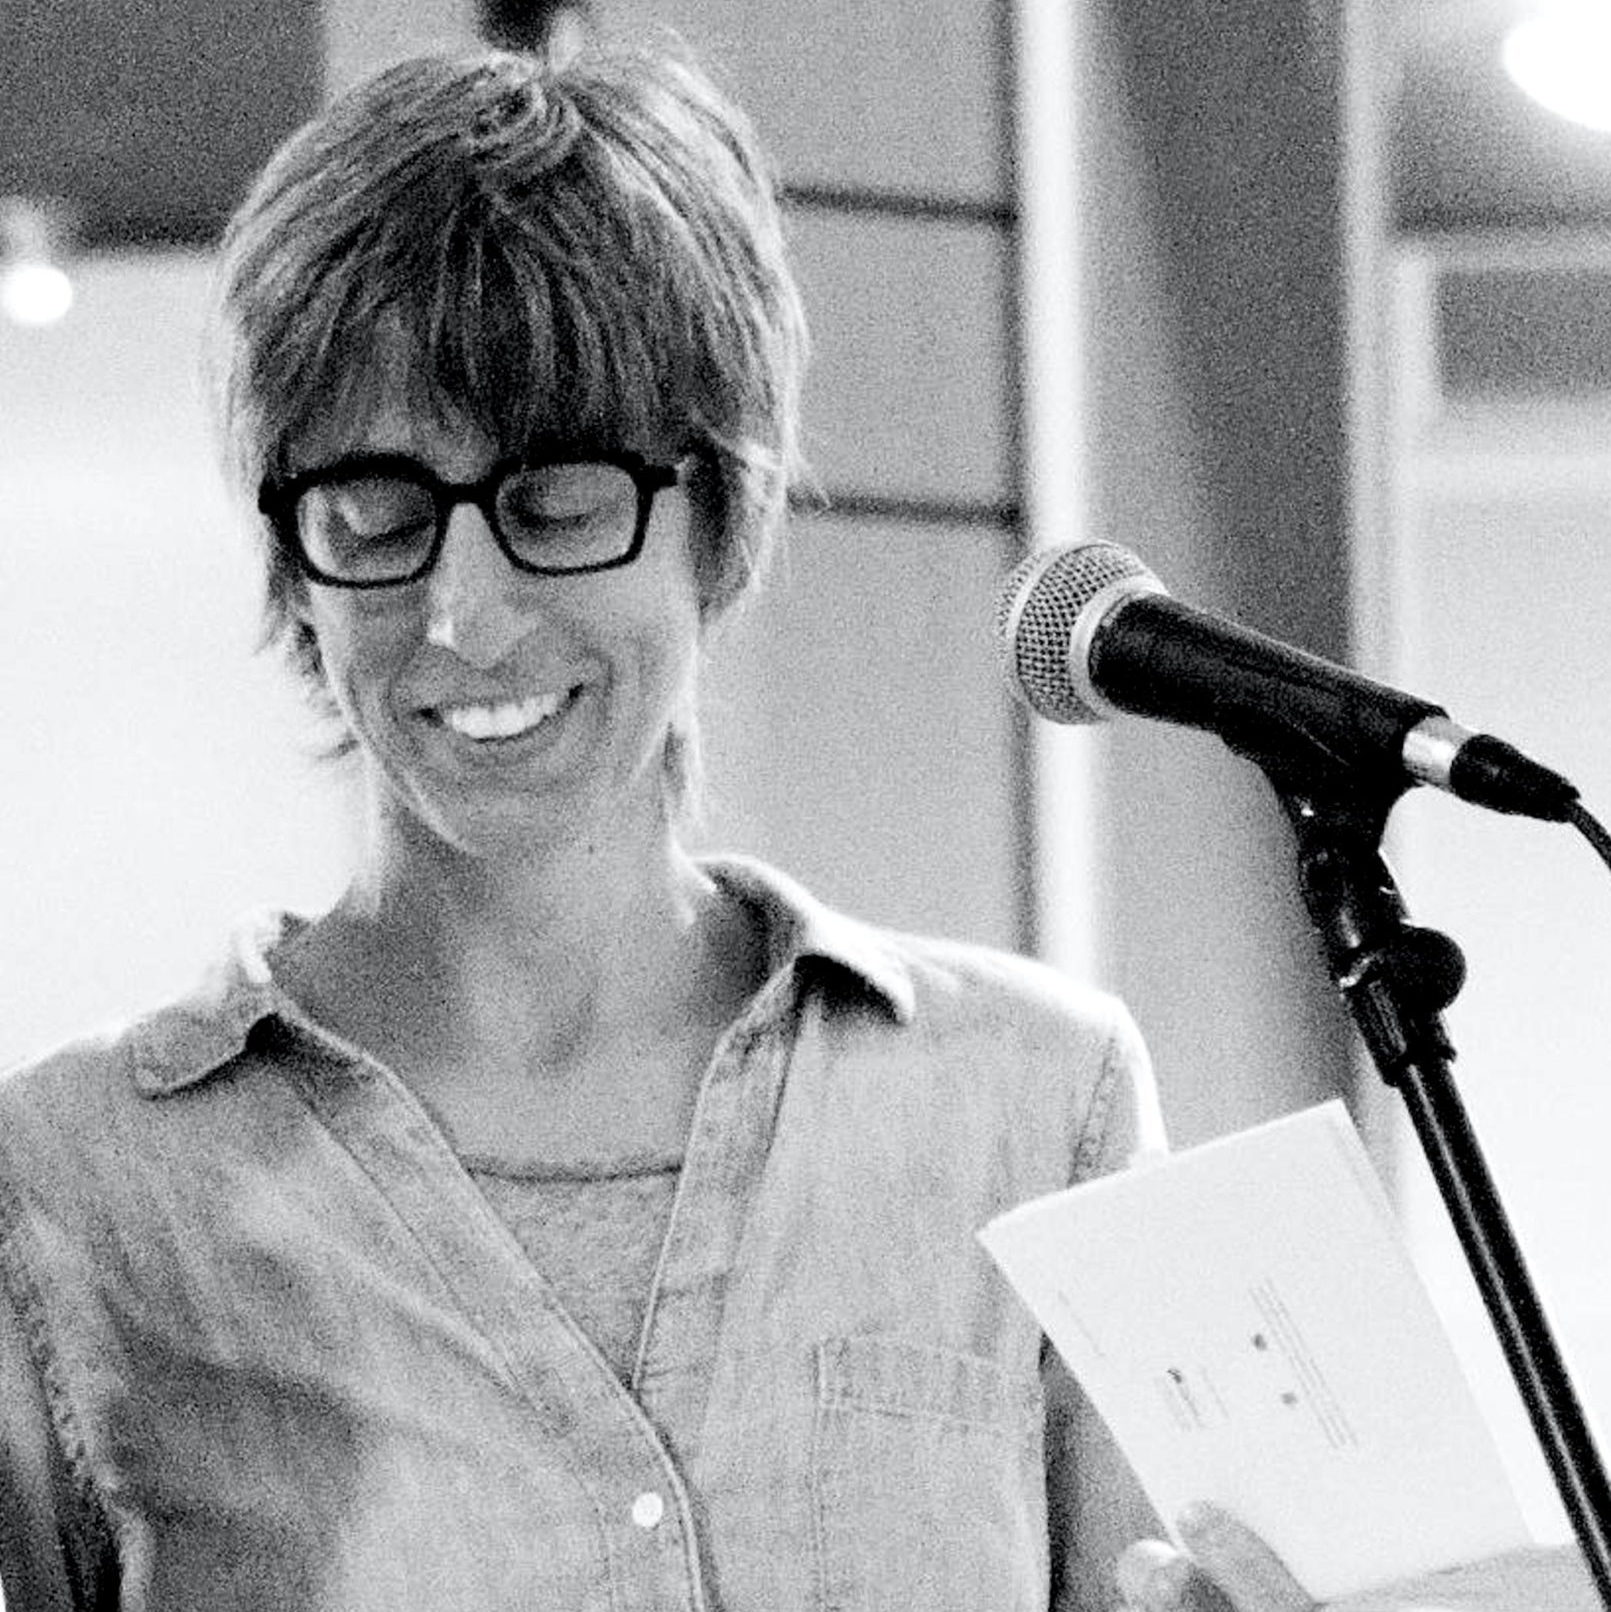 Nathanaël speaking into mic, black and white photo